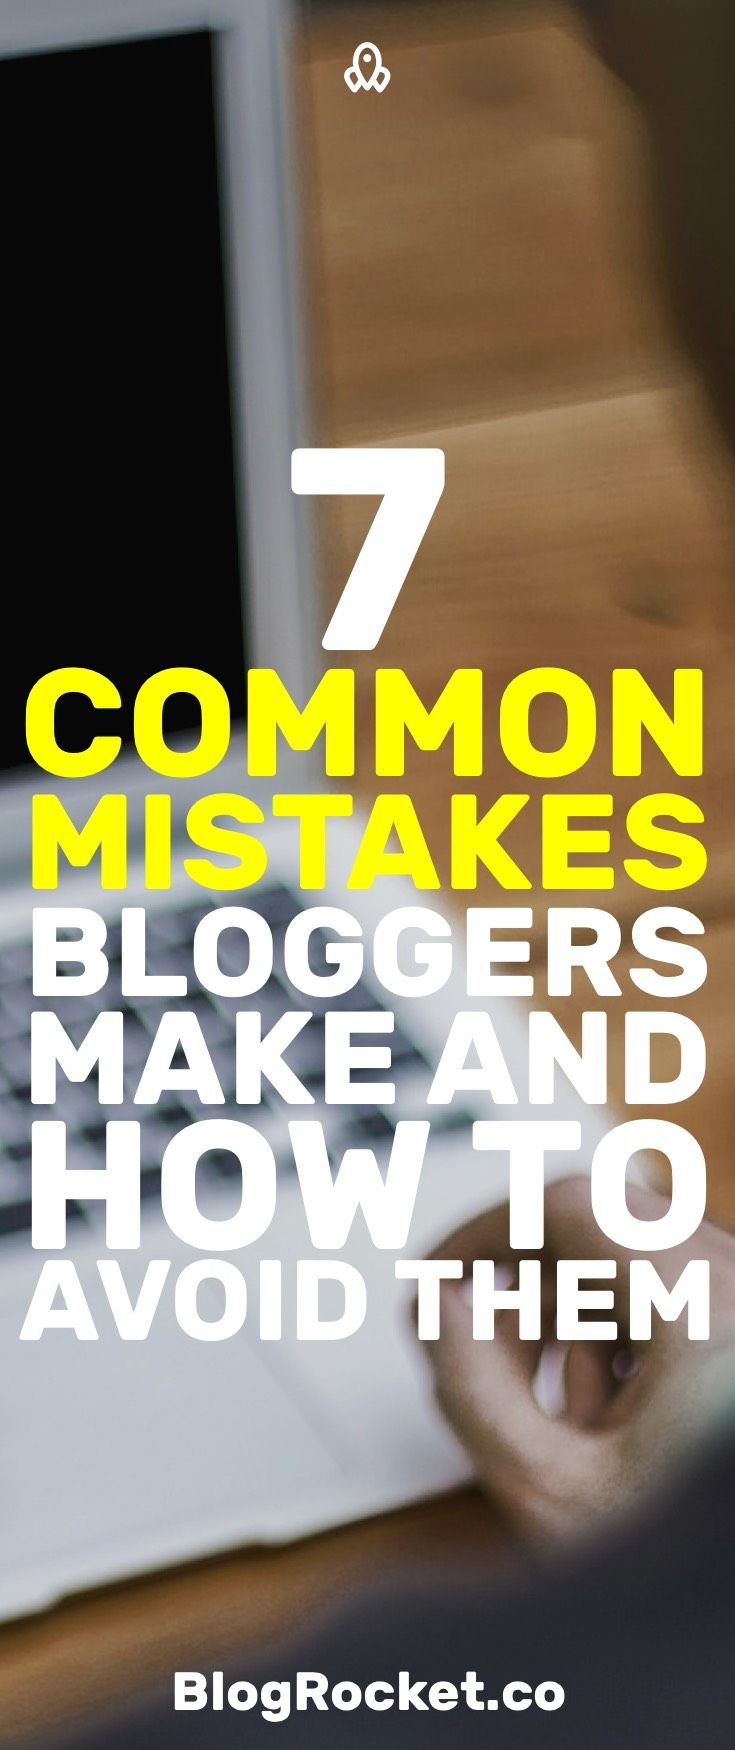 Every blogger makes mistakes but you don't want to make these common blogging mistakes that will set you back.